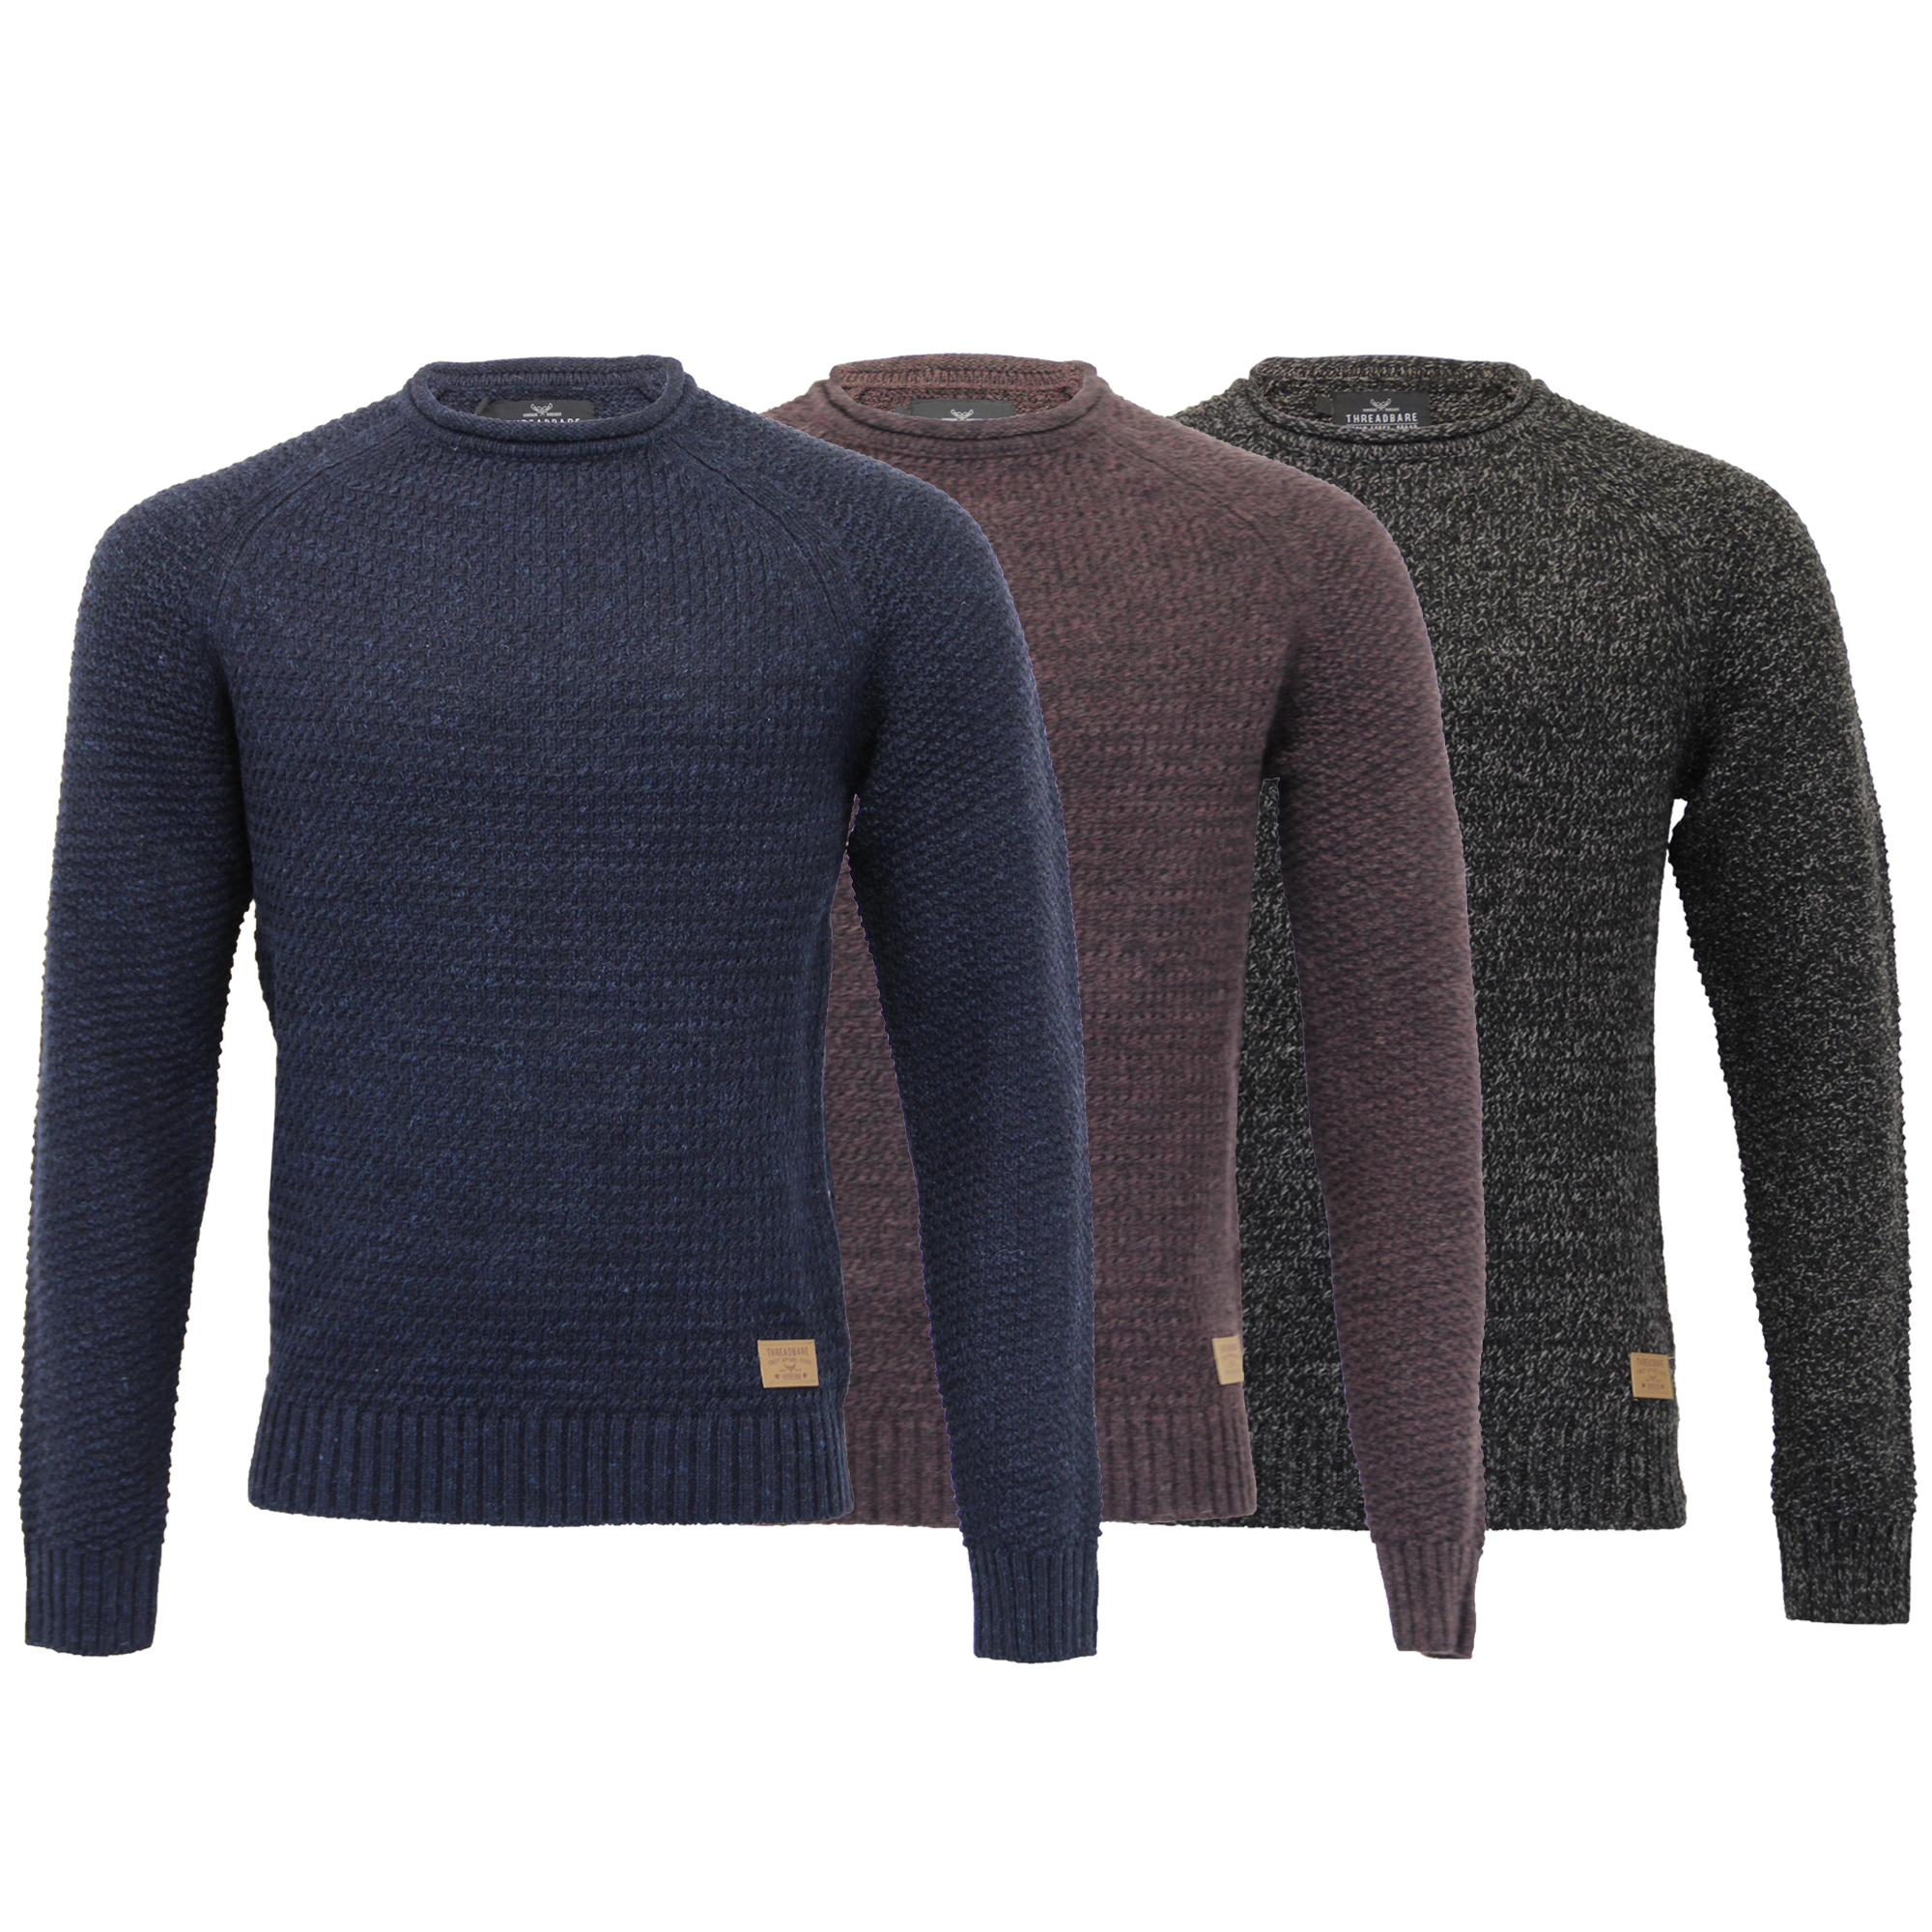 Mens-Wool-Mix-Jumper-Threadbare-Cable-Knitted-Sweater-Pullover-Top-Casual-Winter thumbnail 4